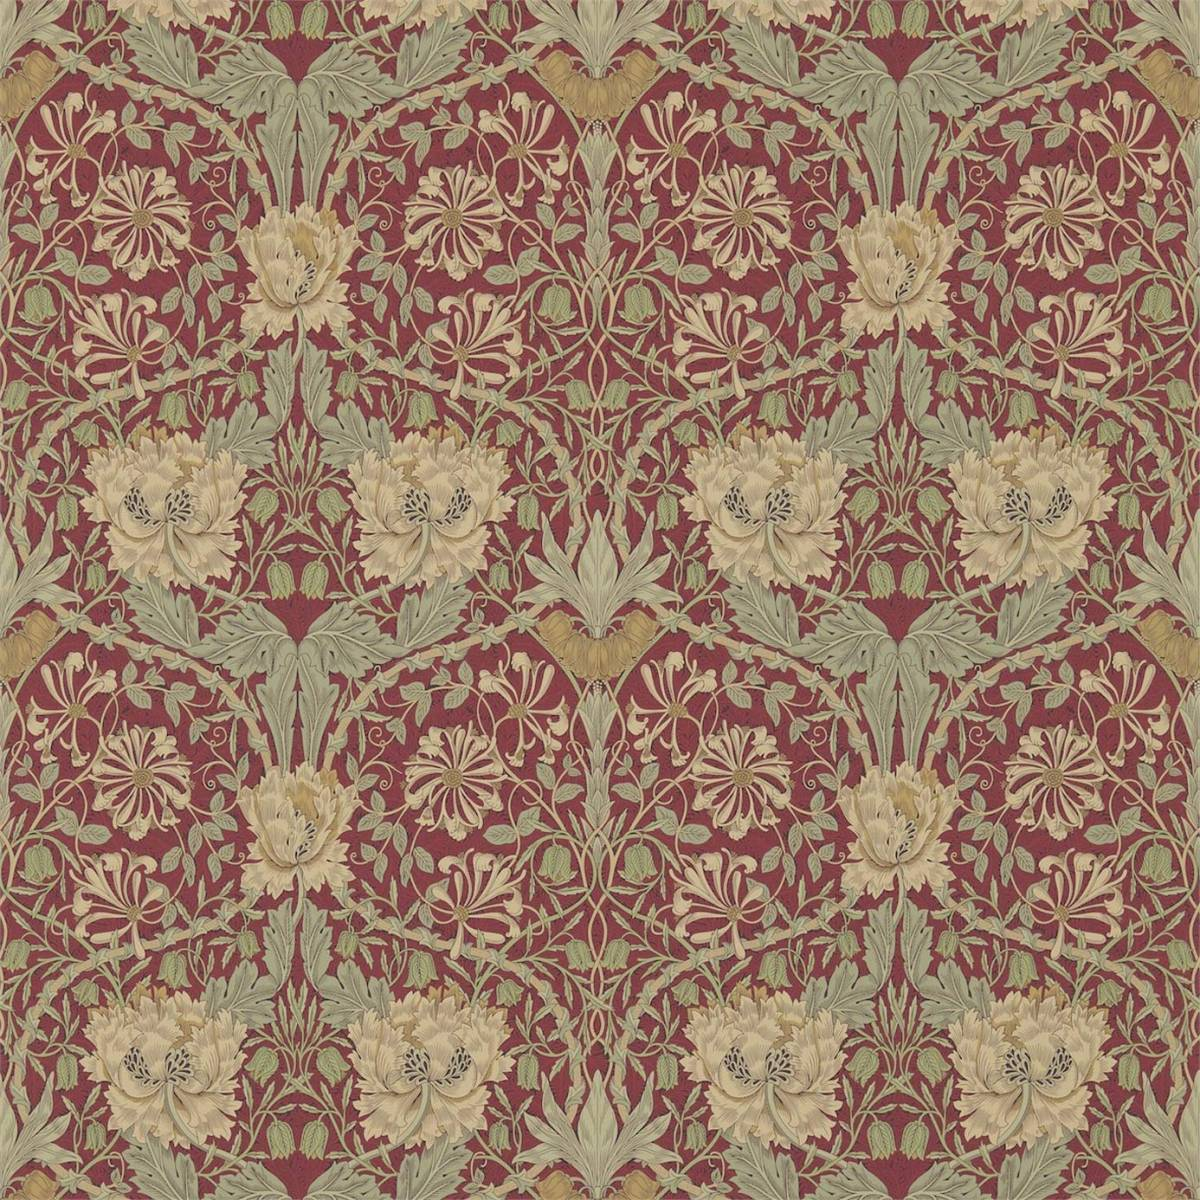 Honeysuckle Amp Tulip Wallpaper Red Gold 214700